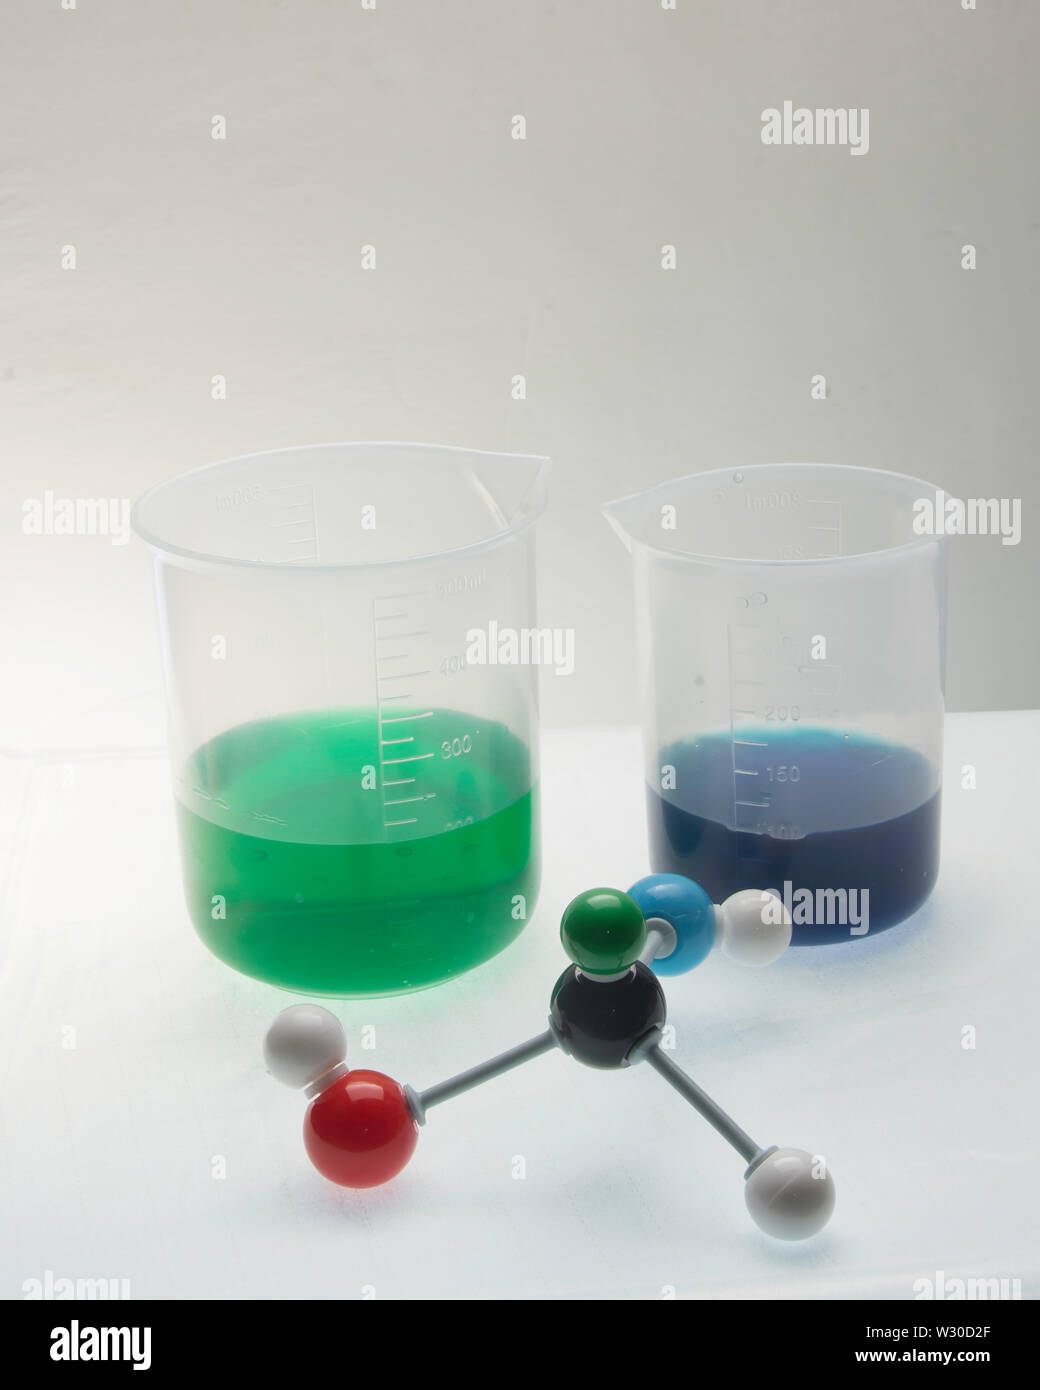 Molecule with various aspects of its compents and liquids in beakers. Stock Photo